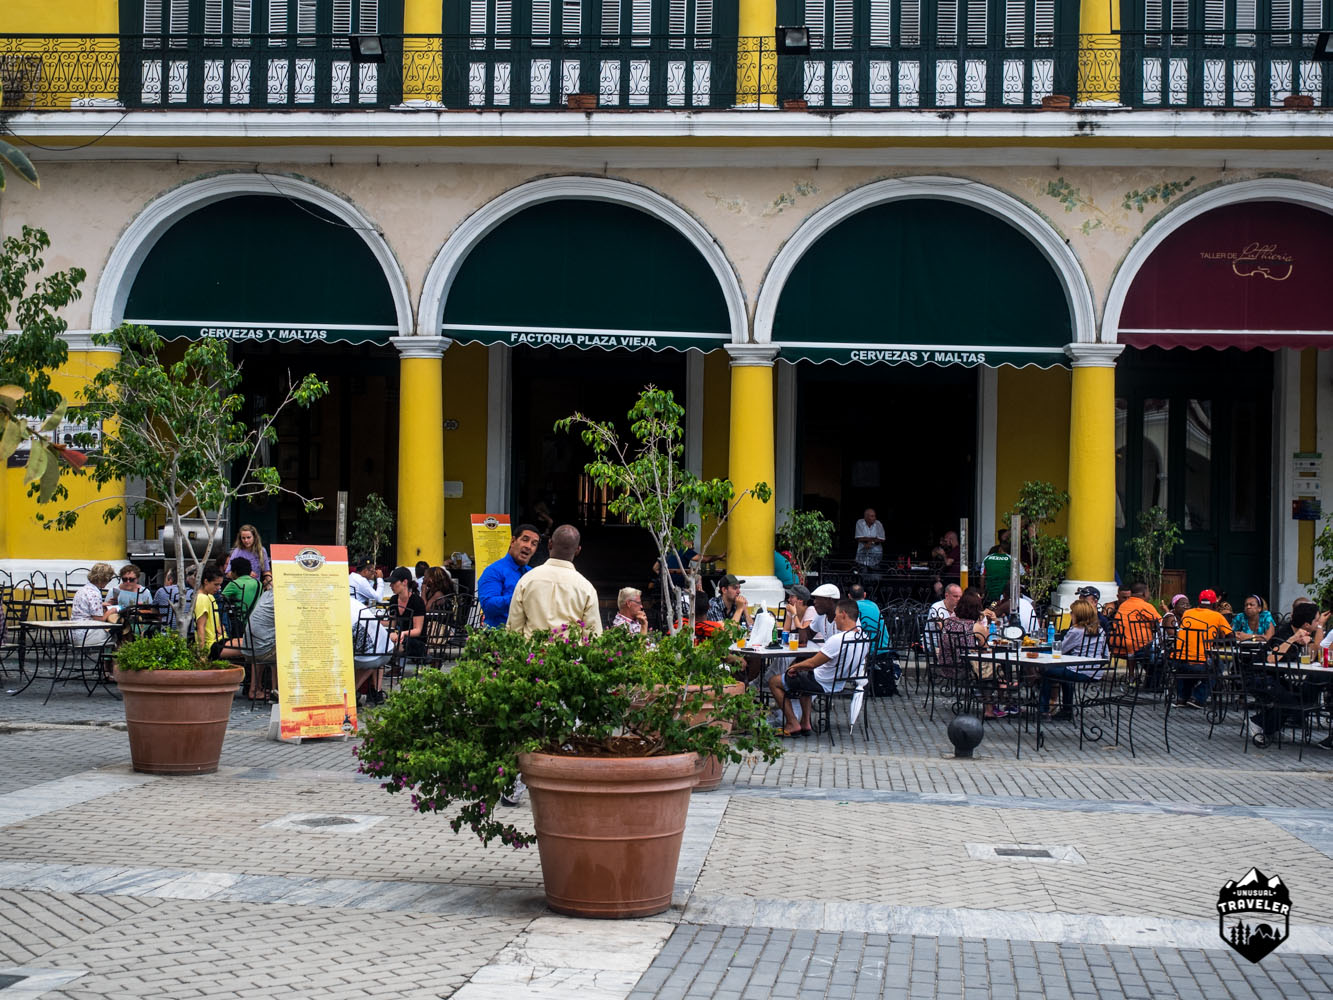 The outside area at Factoria Plaza Vieja.